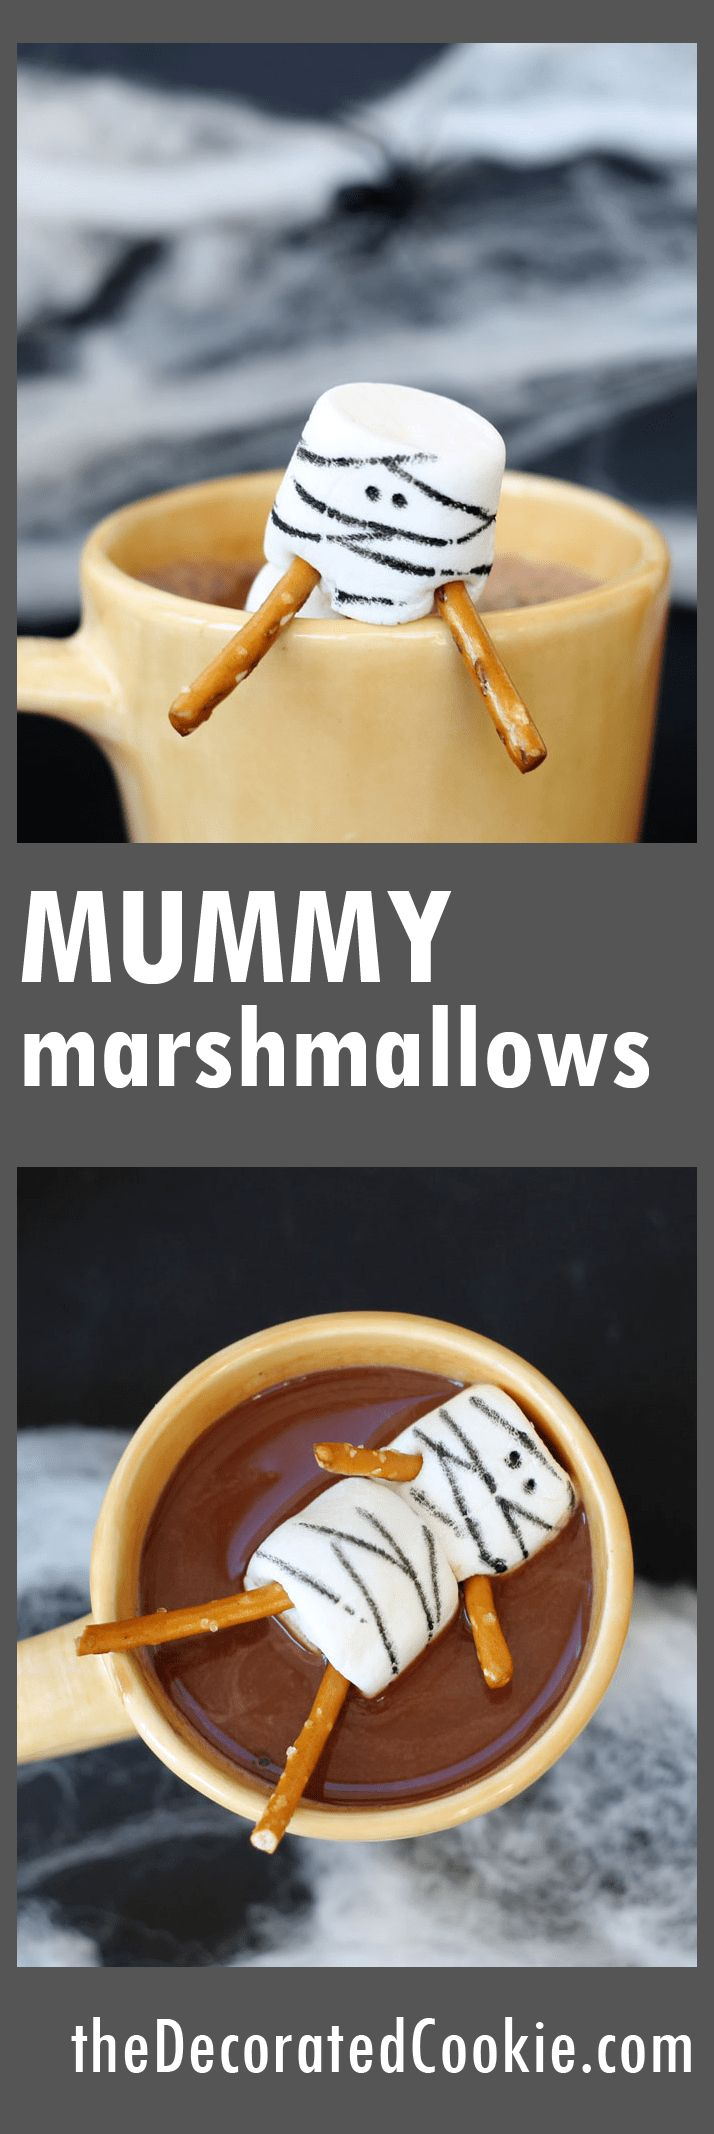 Easy, fun way to dress up Halloween hot cocoa: Mummy marshmallows!